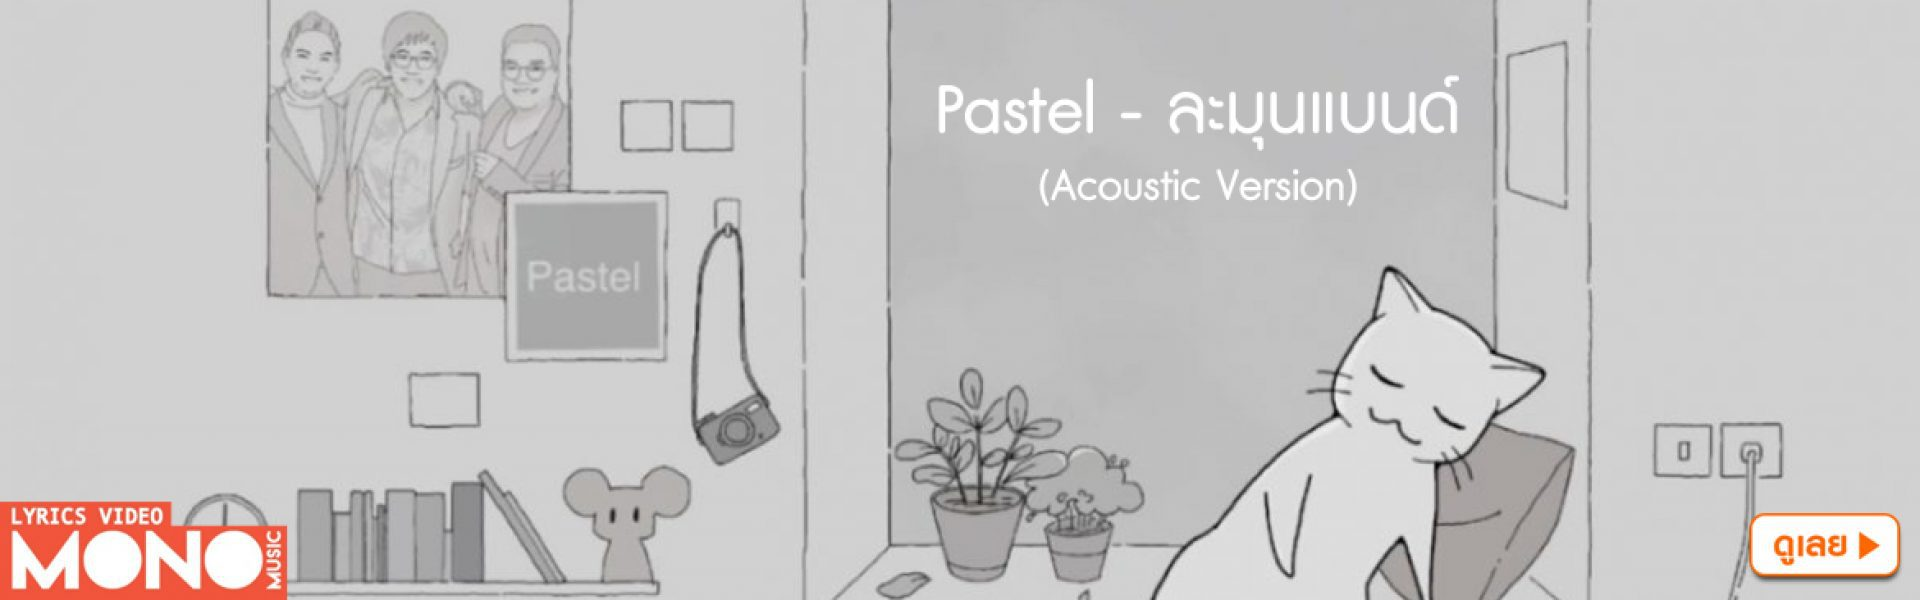 Pastel - ละมุนแบนด์ (Acoustic Version) [Lyrics Video]